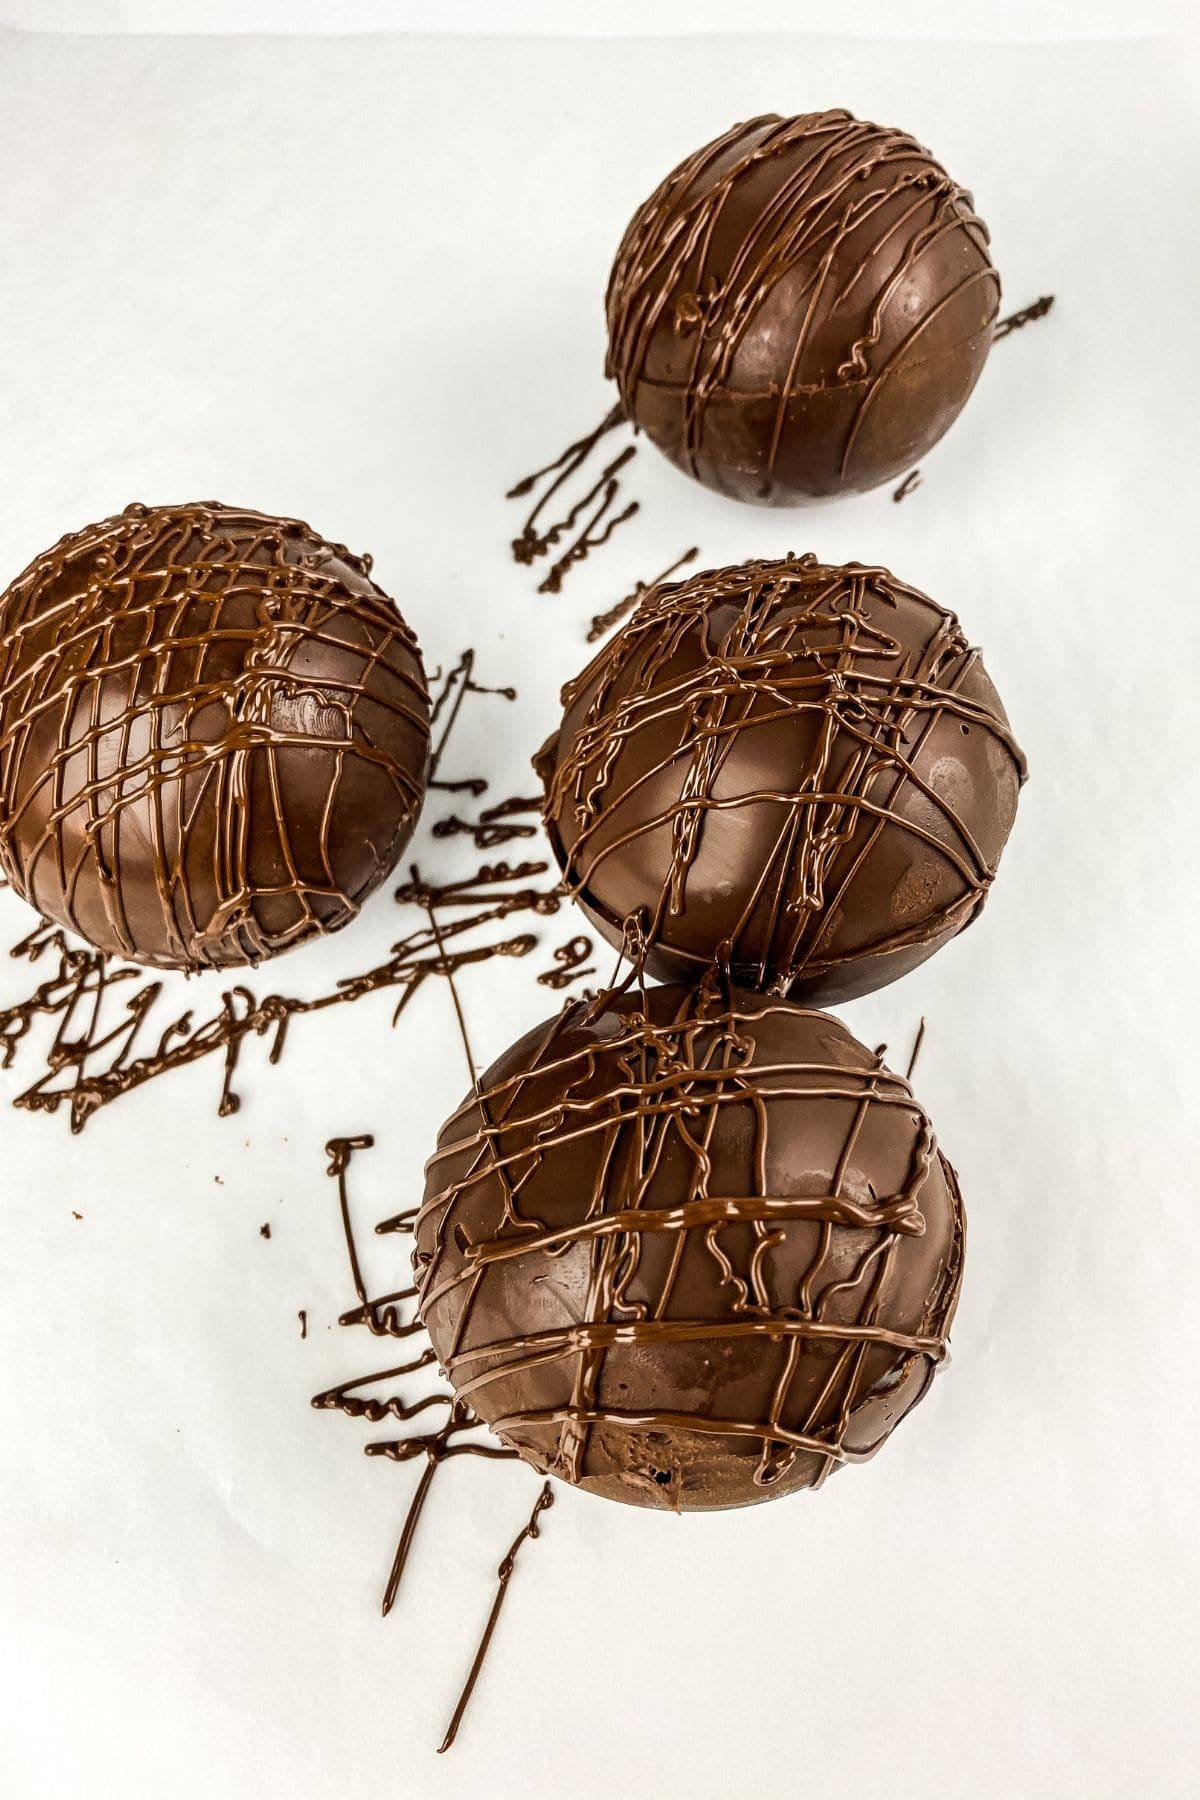 Chocolate coffee bombs on table